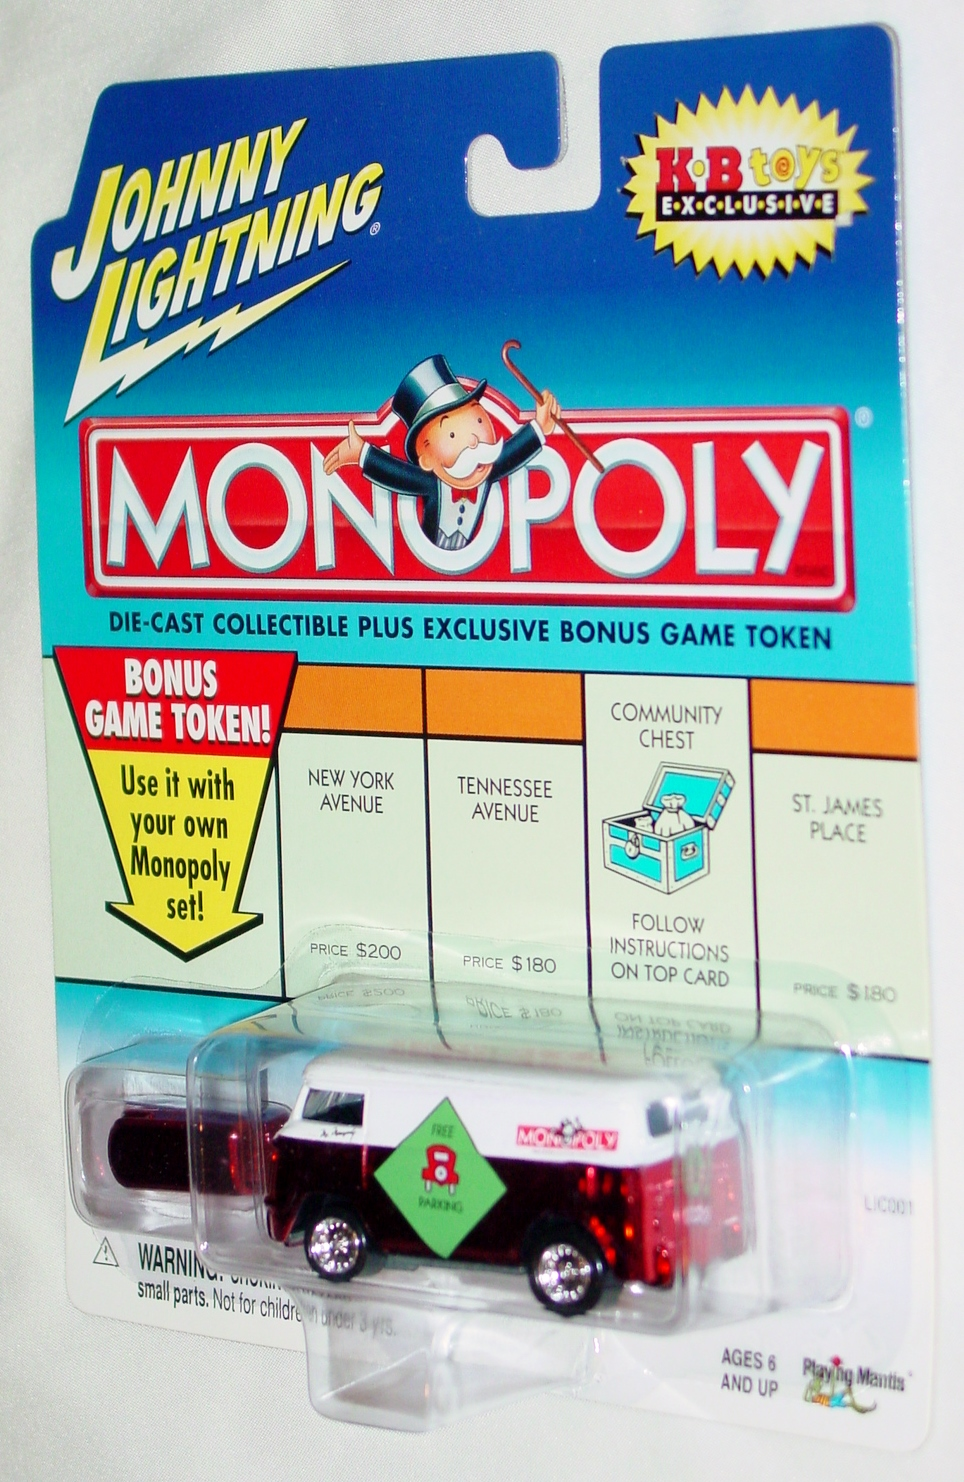 White Lightning - Monopoly 60 VW Van Candy Red Free Parking